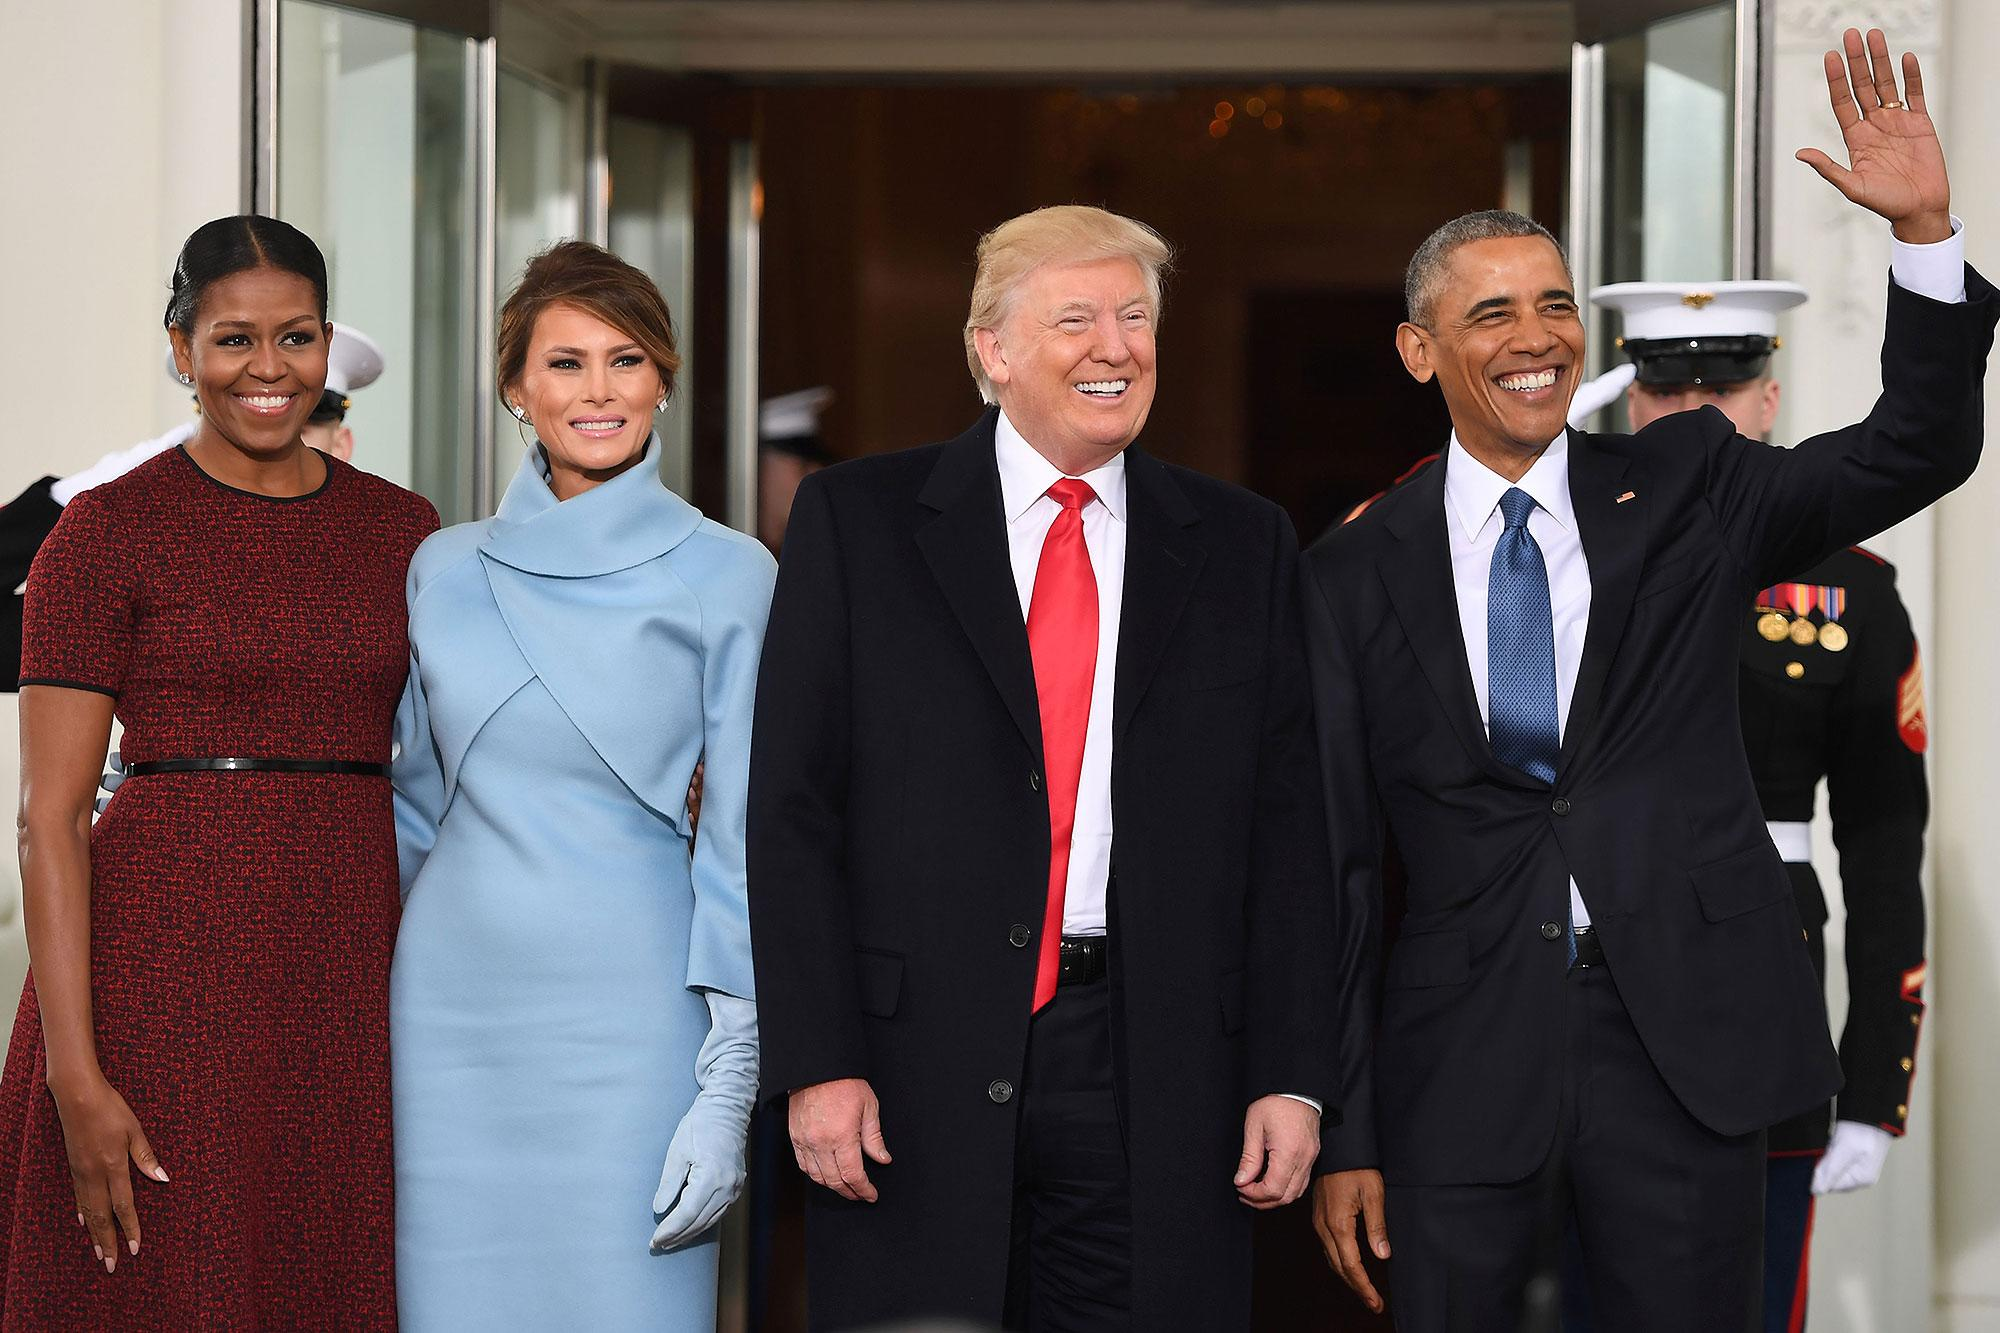 The Obamas Welcome Donald and Melania Trump to the White House Just Before Inauguration